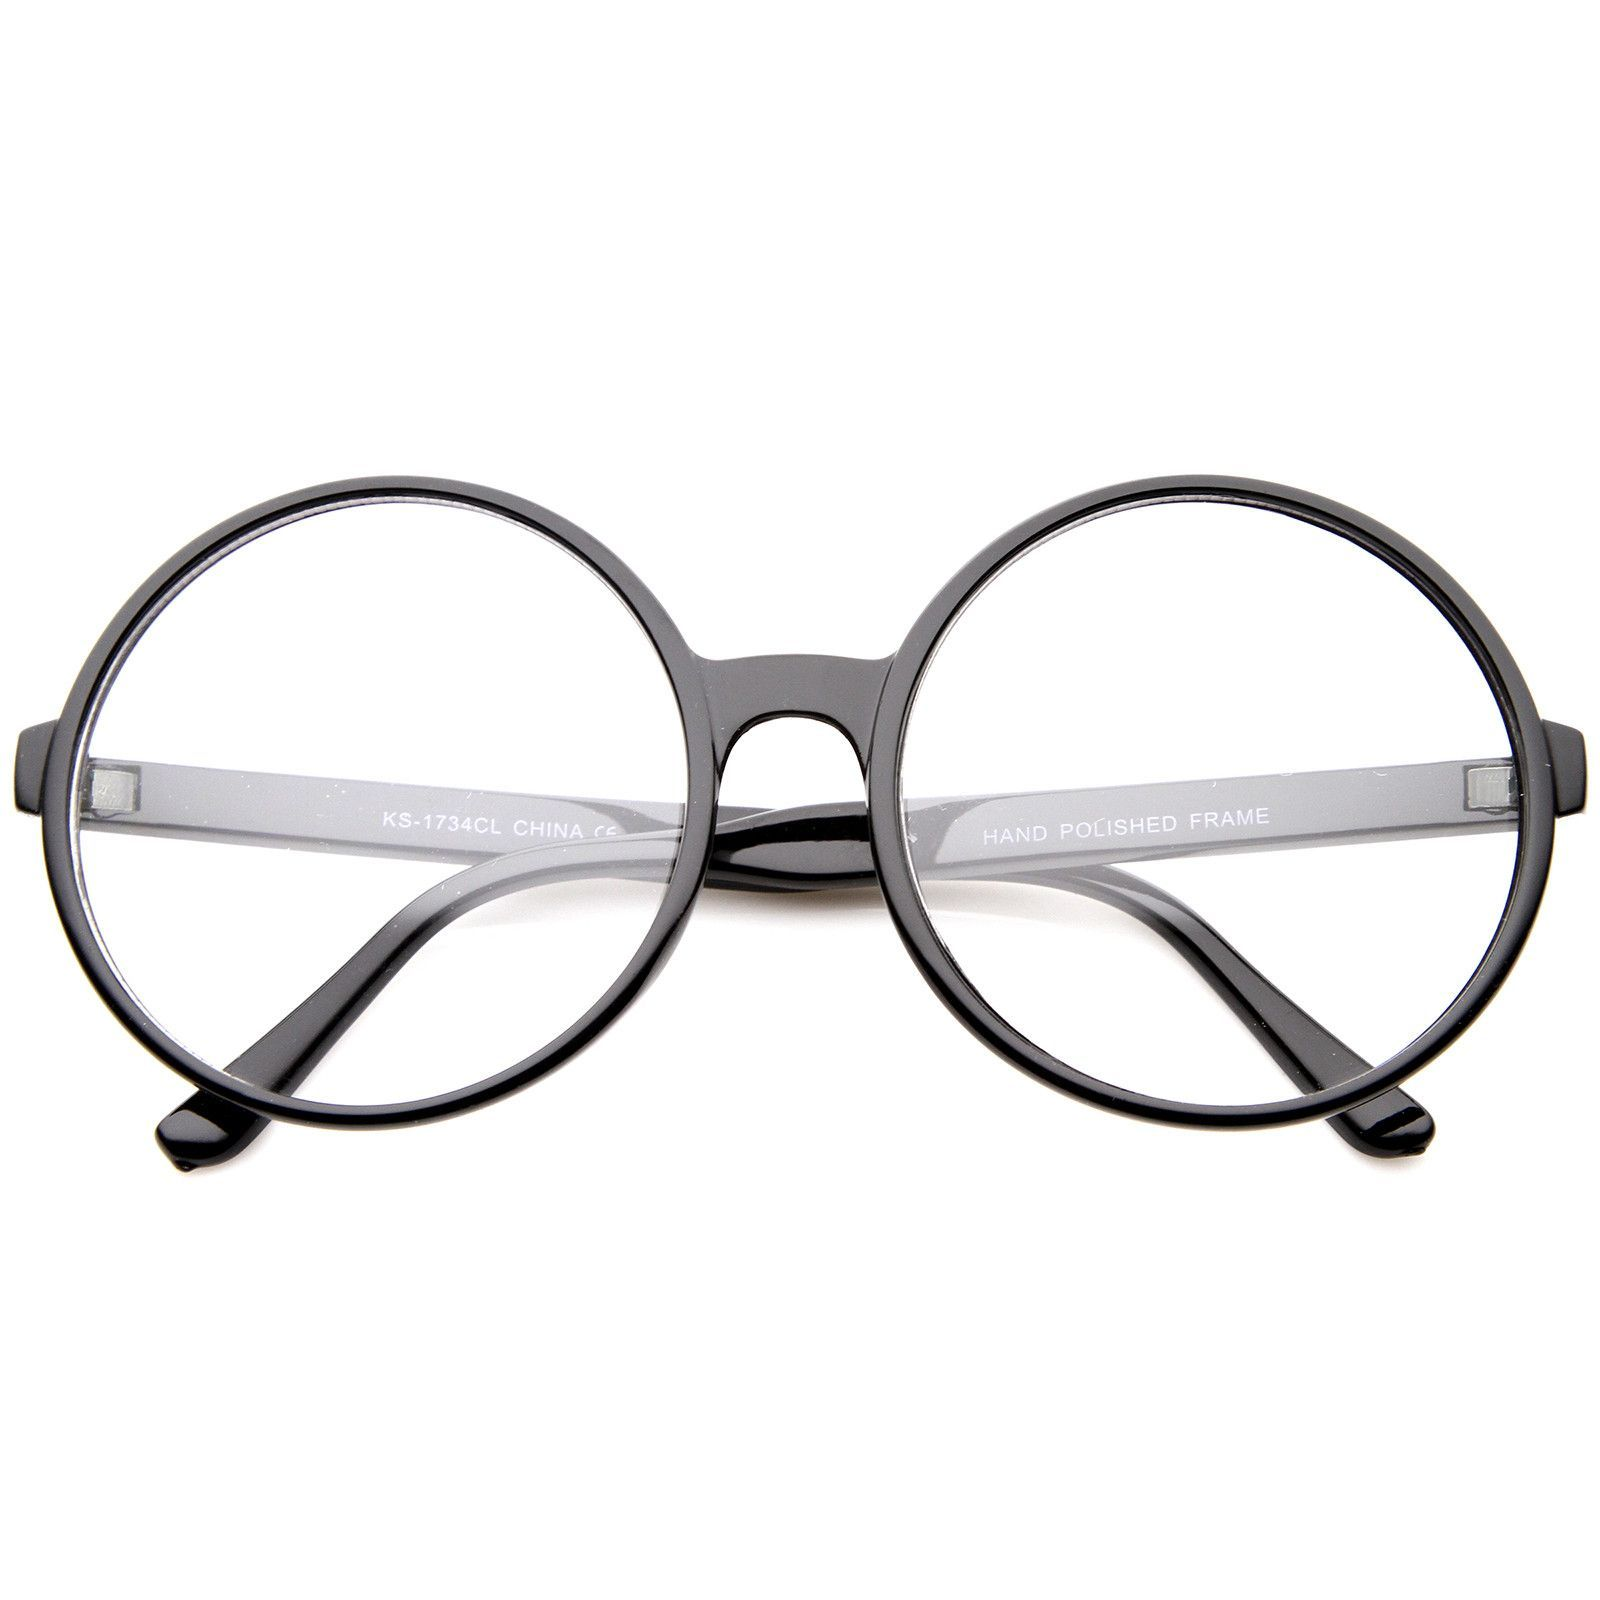 2605de858 Retro Oversize Clear Lens Round Spectacles Eyewear Glasses 60mm #bold # oversized #frame #clear #mirrored #womens #purple #cateye #sunglasses  #sunglass